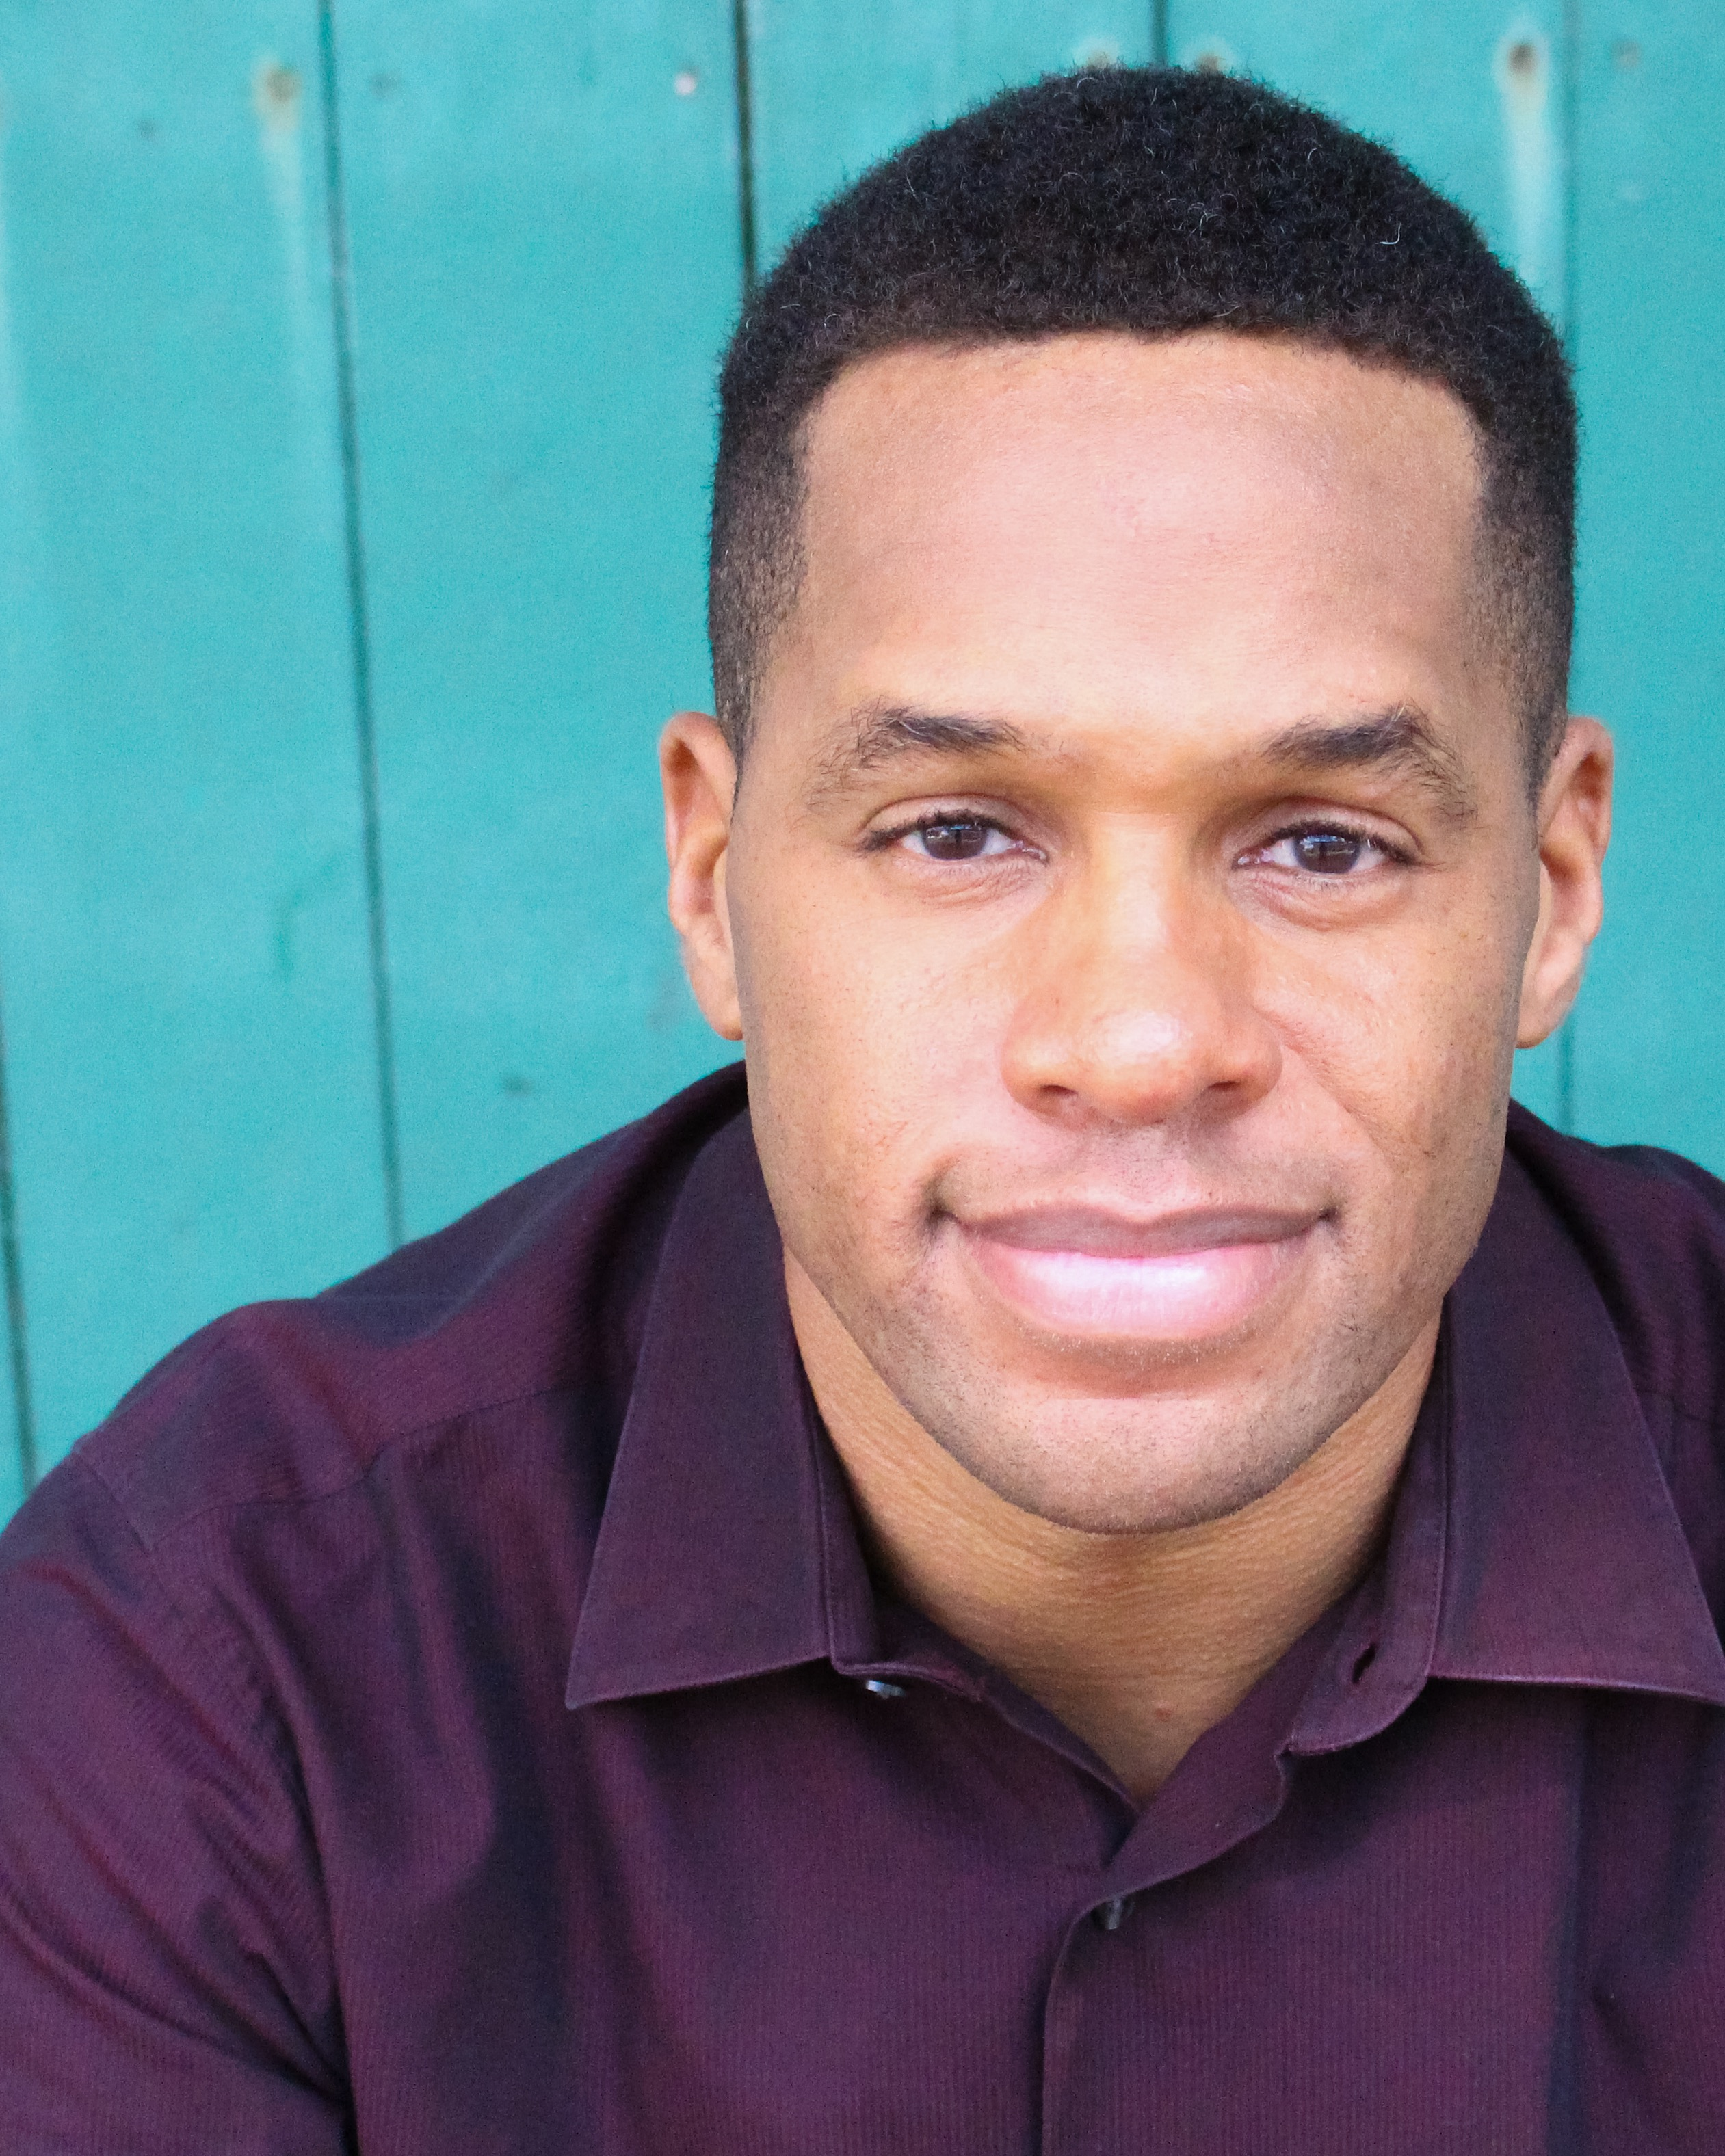 Filmmaker of the Month - August 2020 - Kevin Williams - Actor/Writer/Director/Producer/Comedian - Grew up in NYC now reside in Los Angeles, CA.